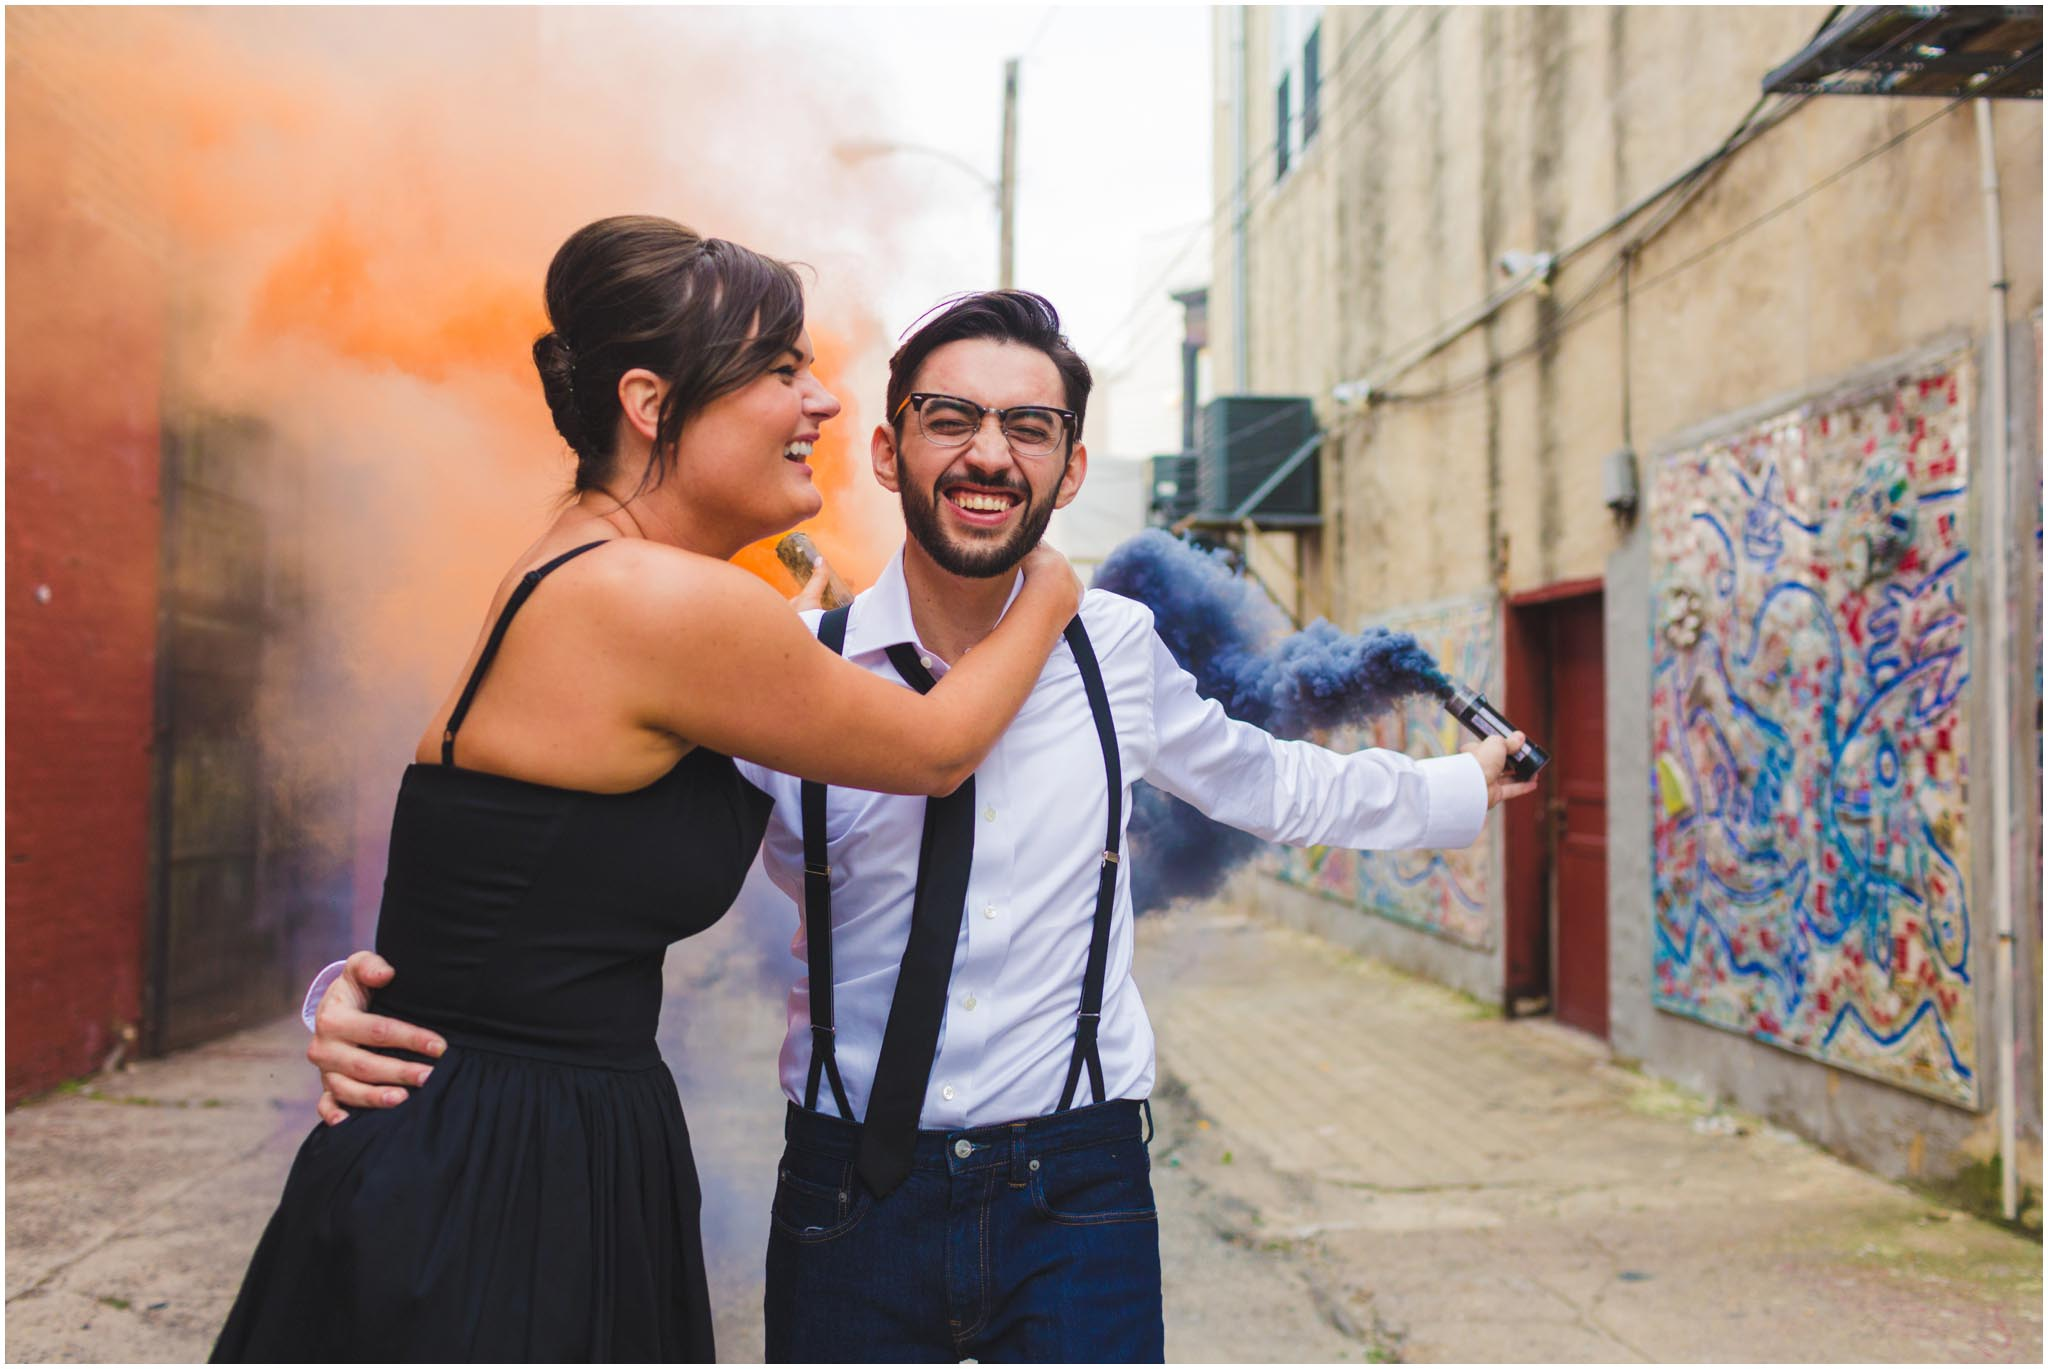 smoke bomb, engagement, smoke grenade, colorful